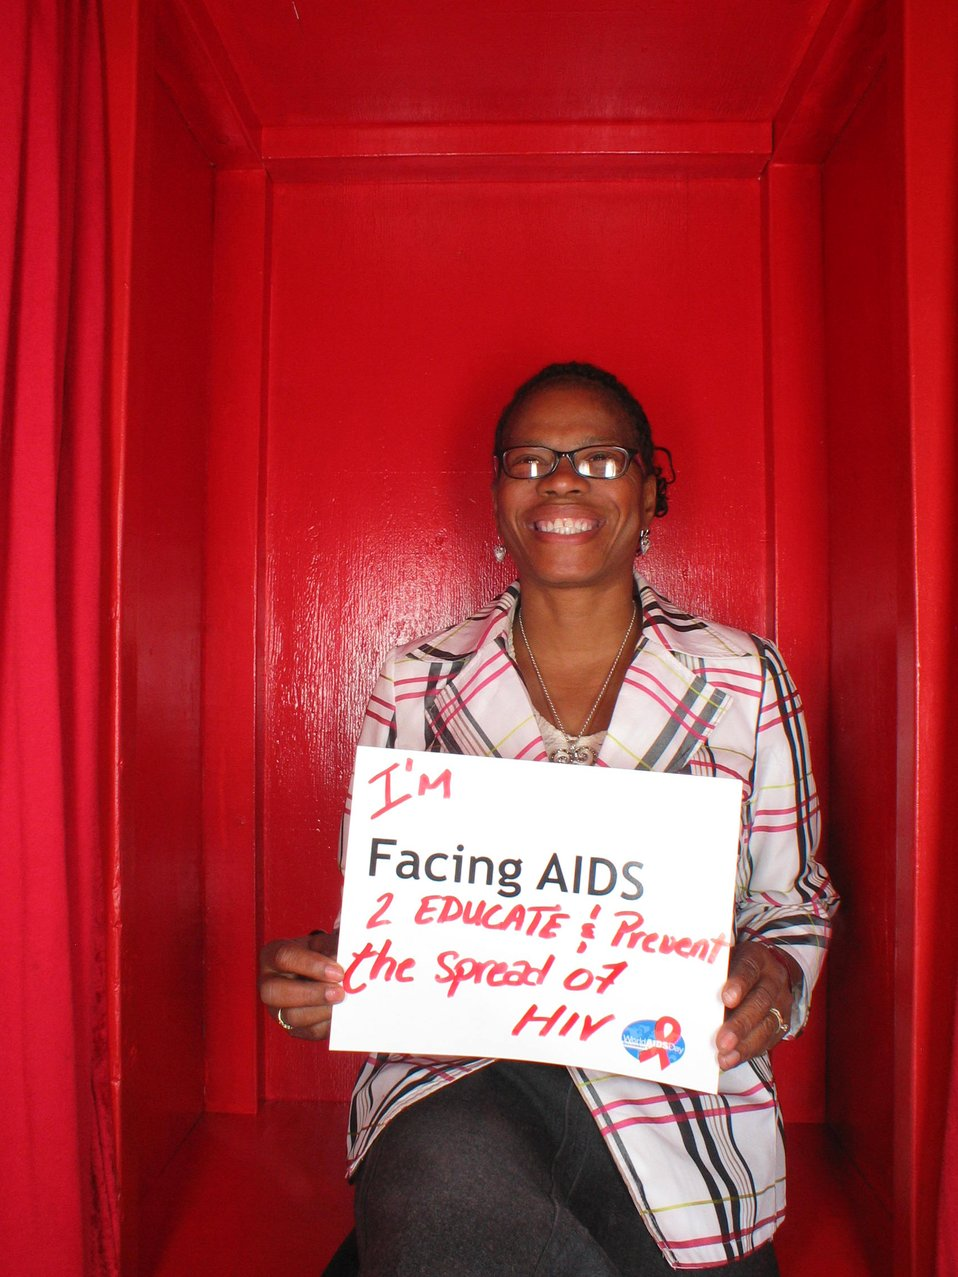 I'm Facing AIDS 2 educate and prevent the spread of HIV